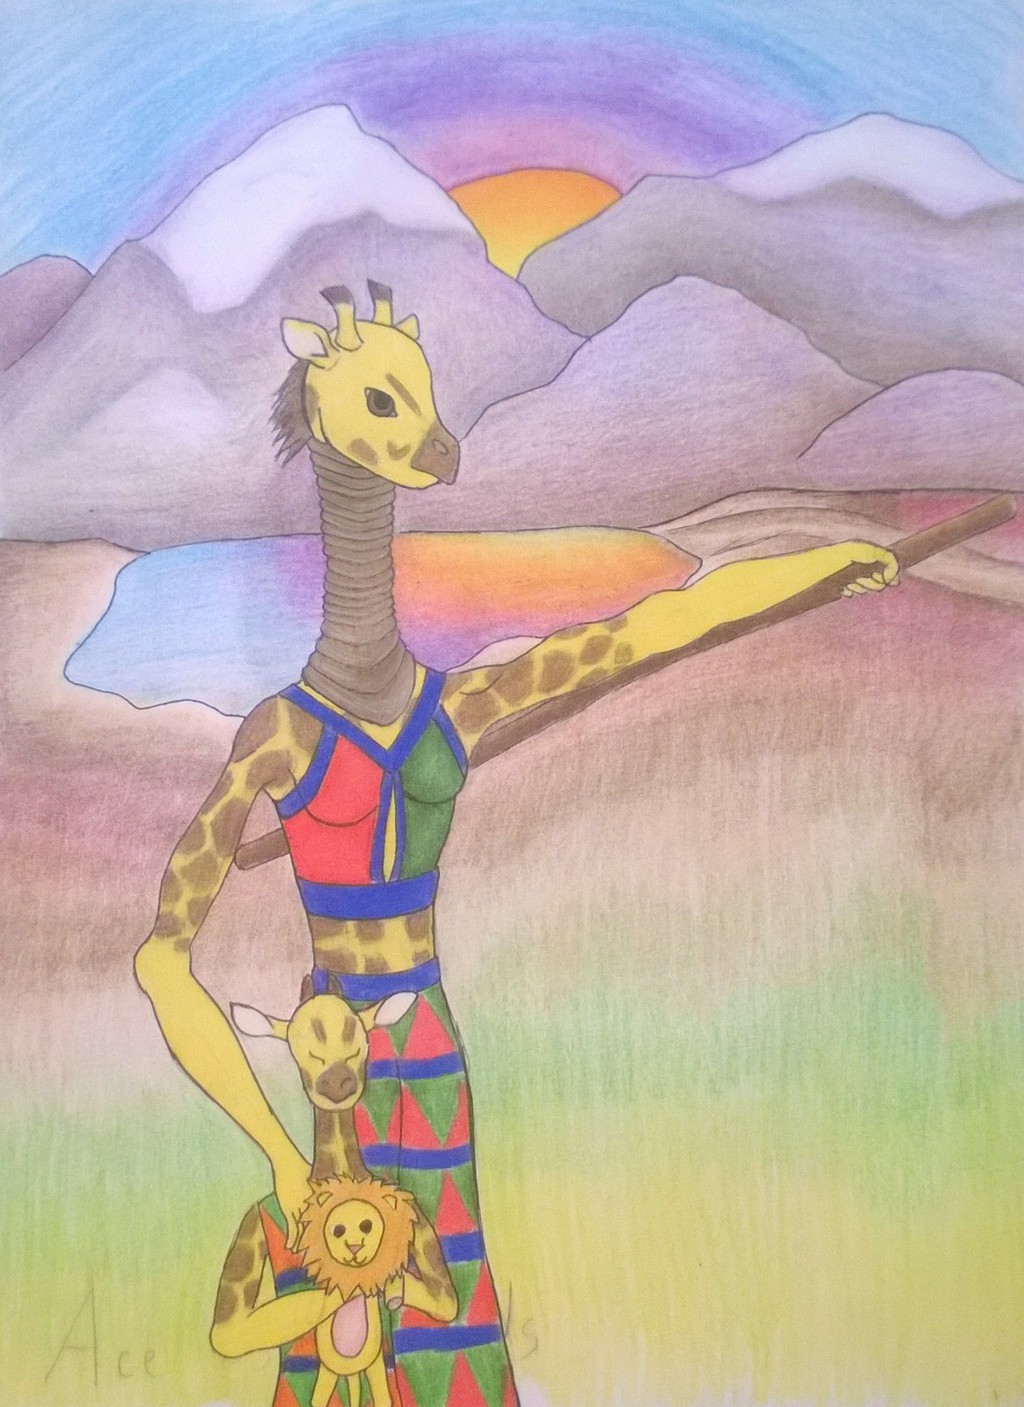 Featured image: Anthro Tarot Deck Ace of Wands